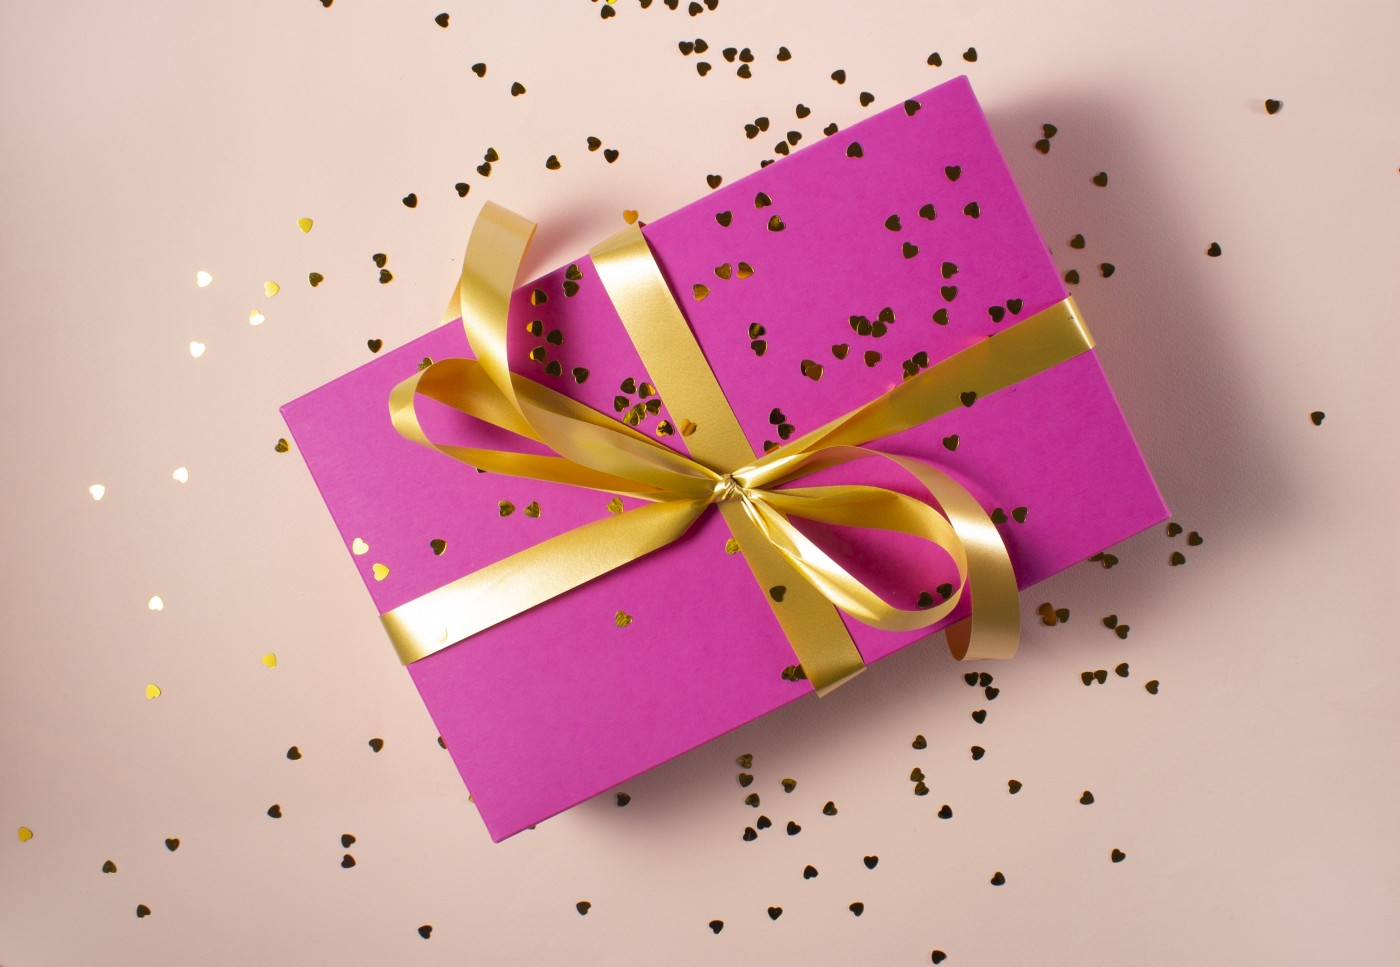 pink gift box with gold ribbon and glitter